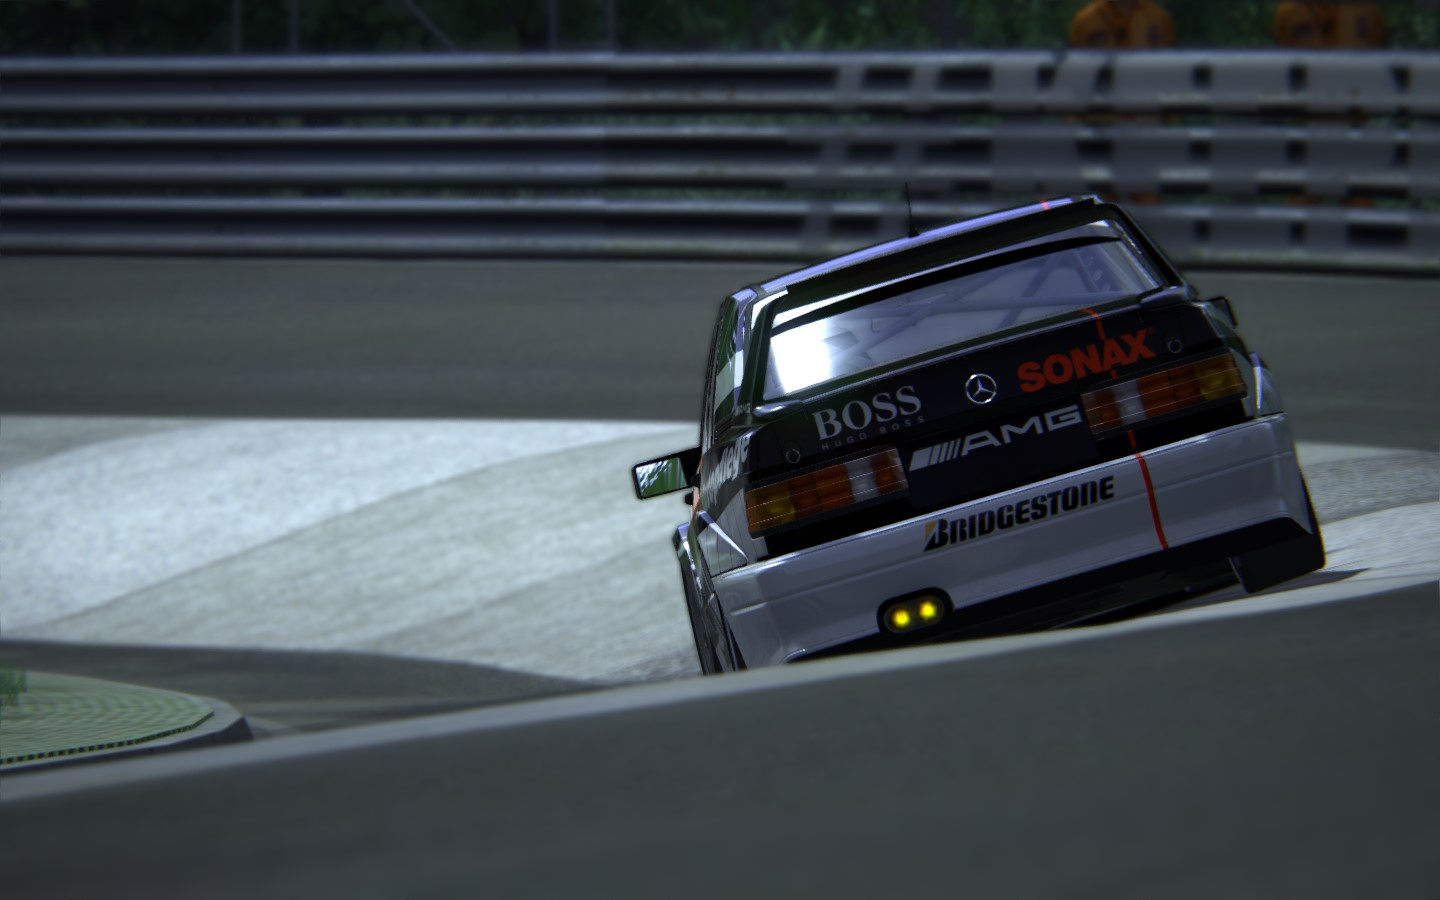 Screenshot_ks_mercedes_190_evo2_ks_nordschleife_28-3-118-0-49-43.jpg